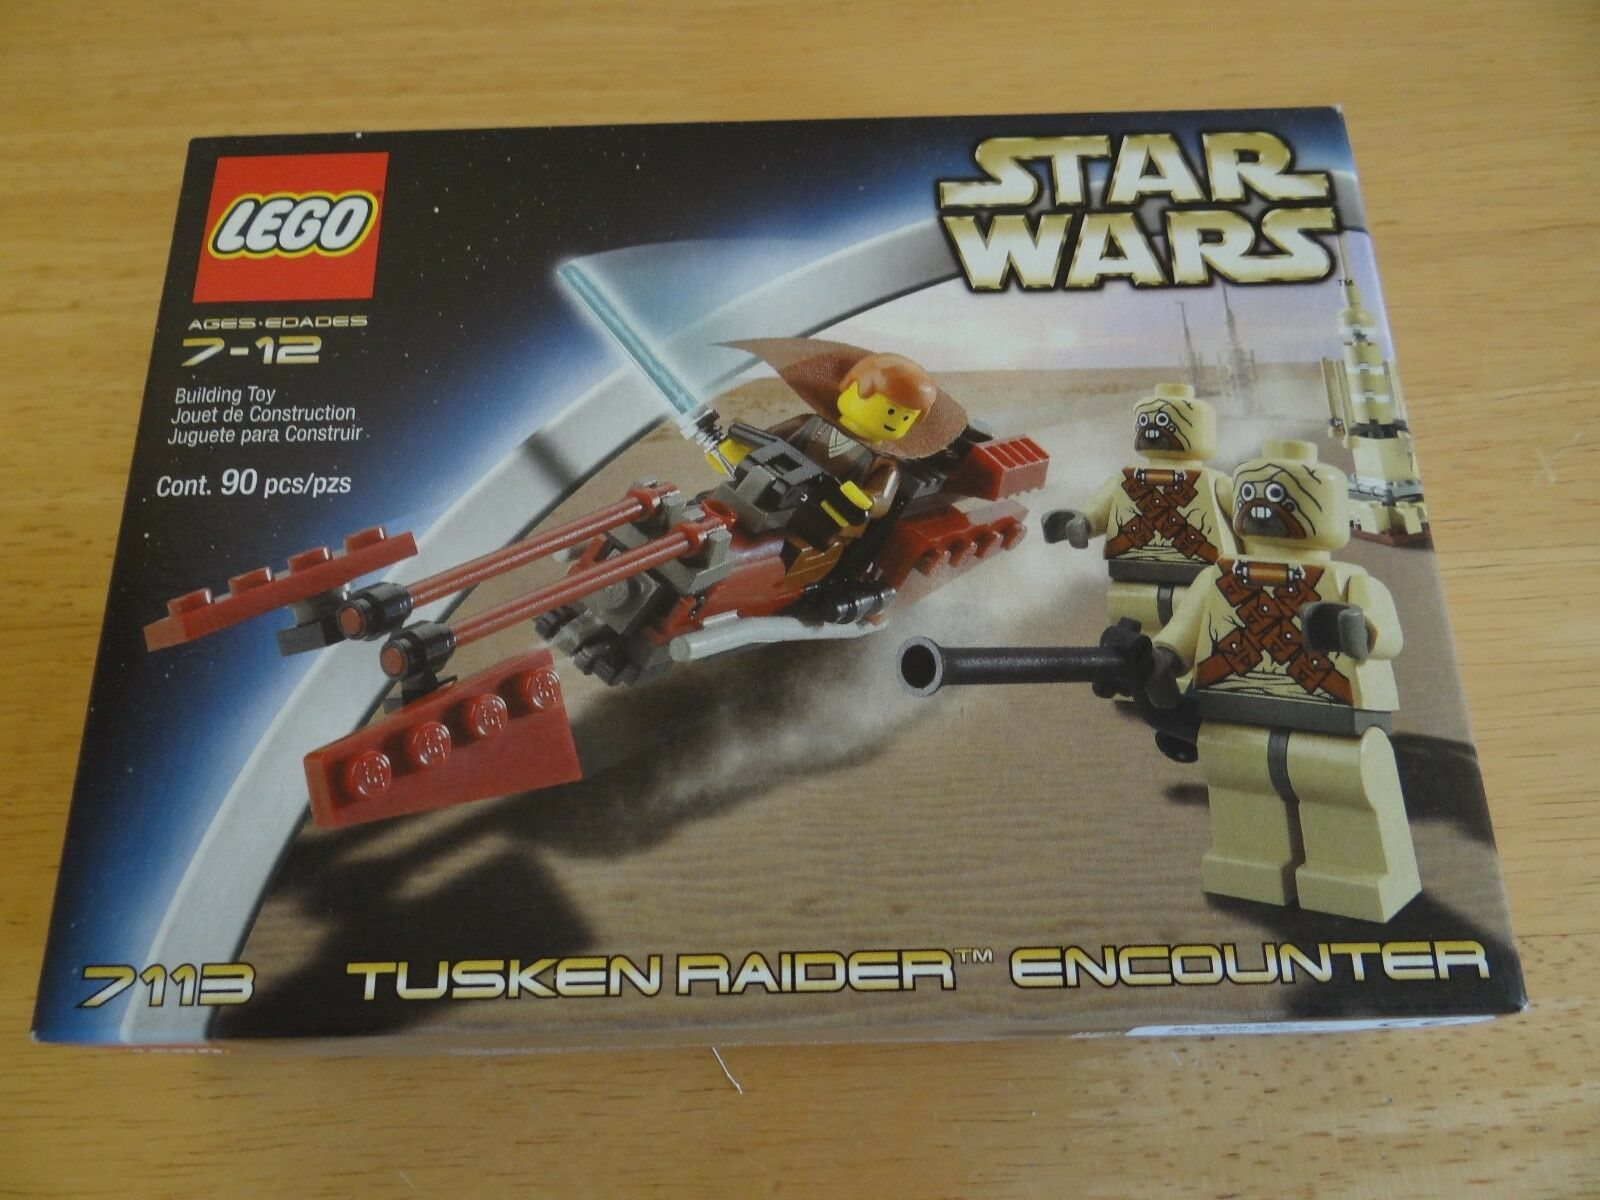 LEGO 7113 Star Wars Tusken Raider Encounter, BNIB